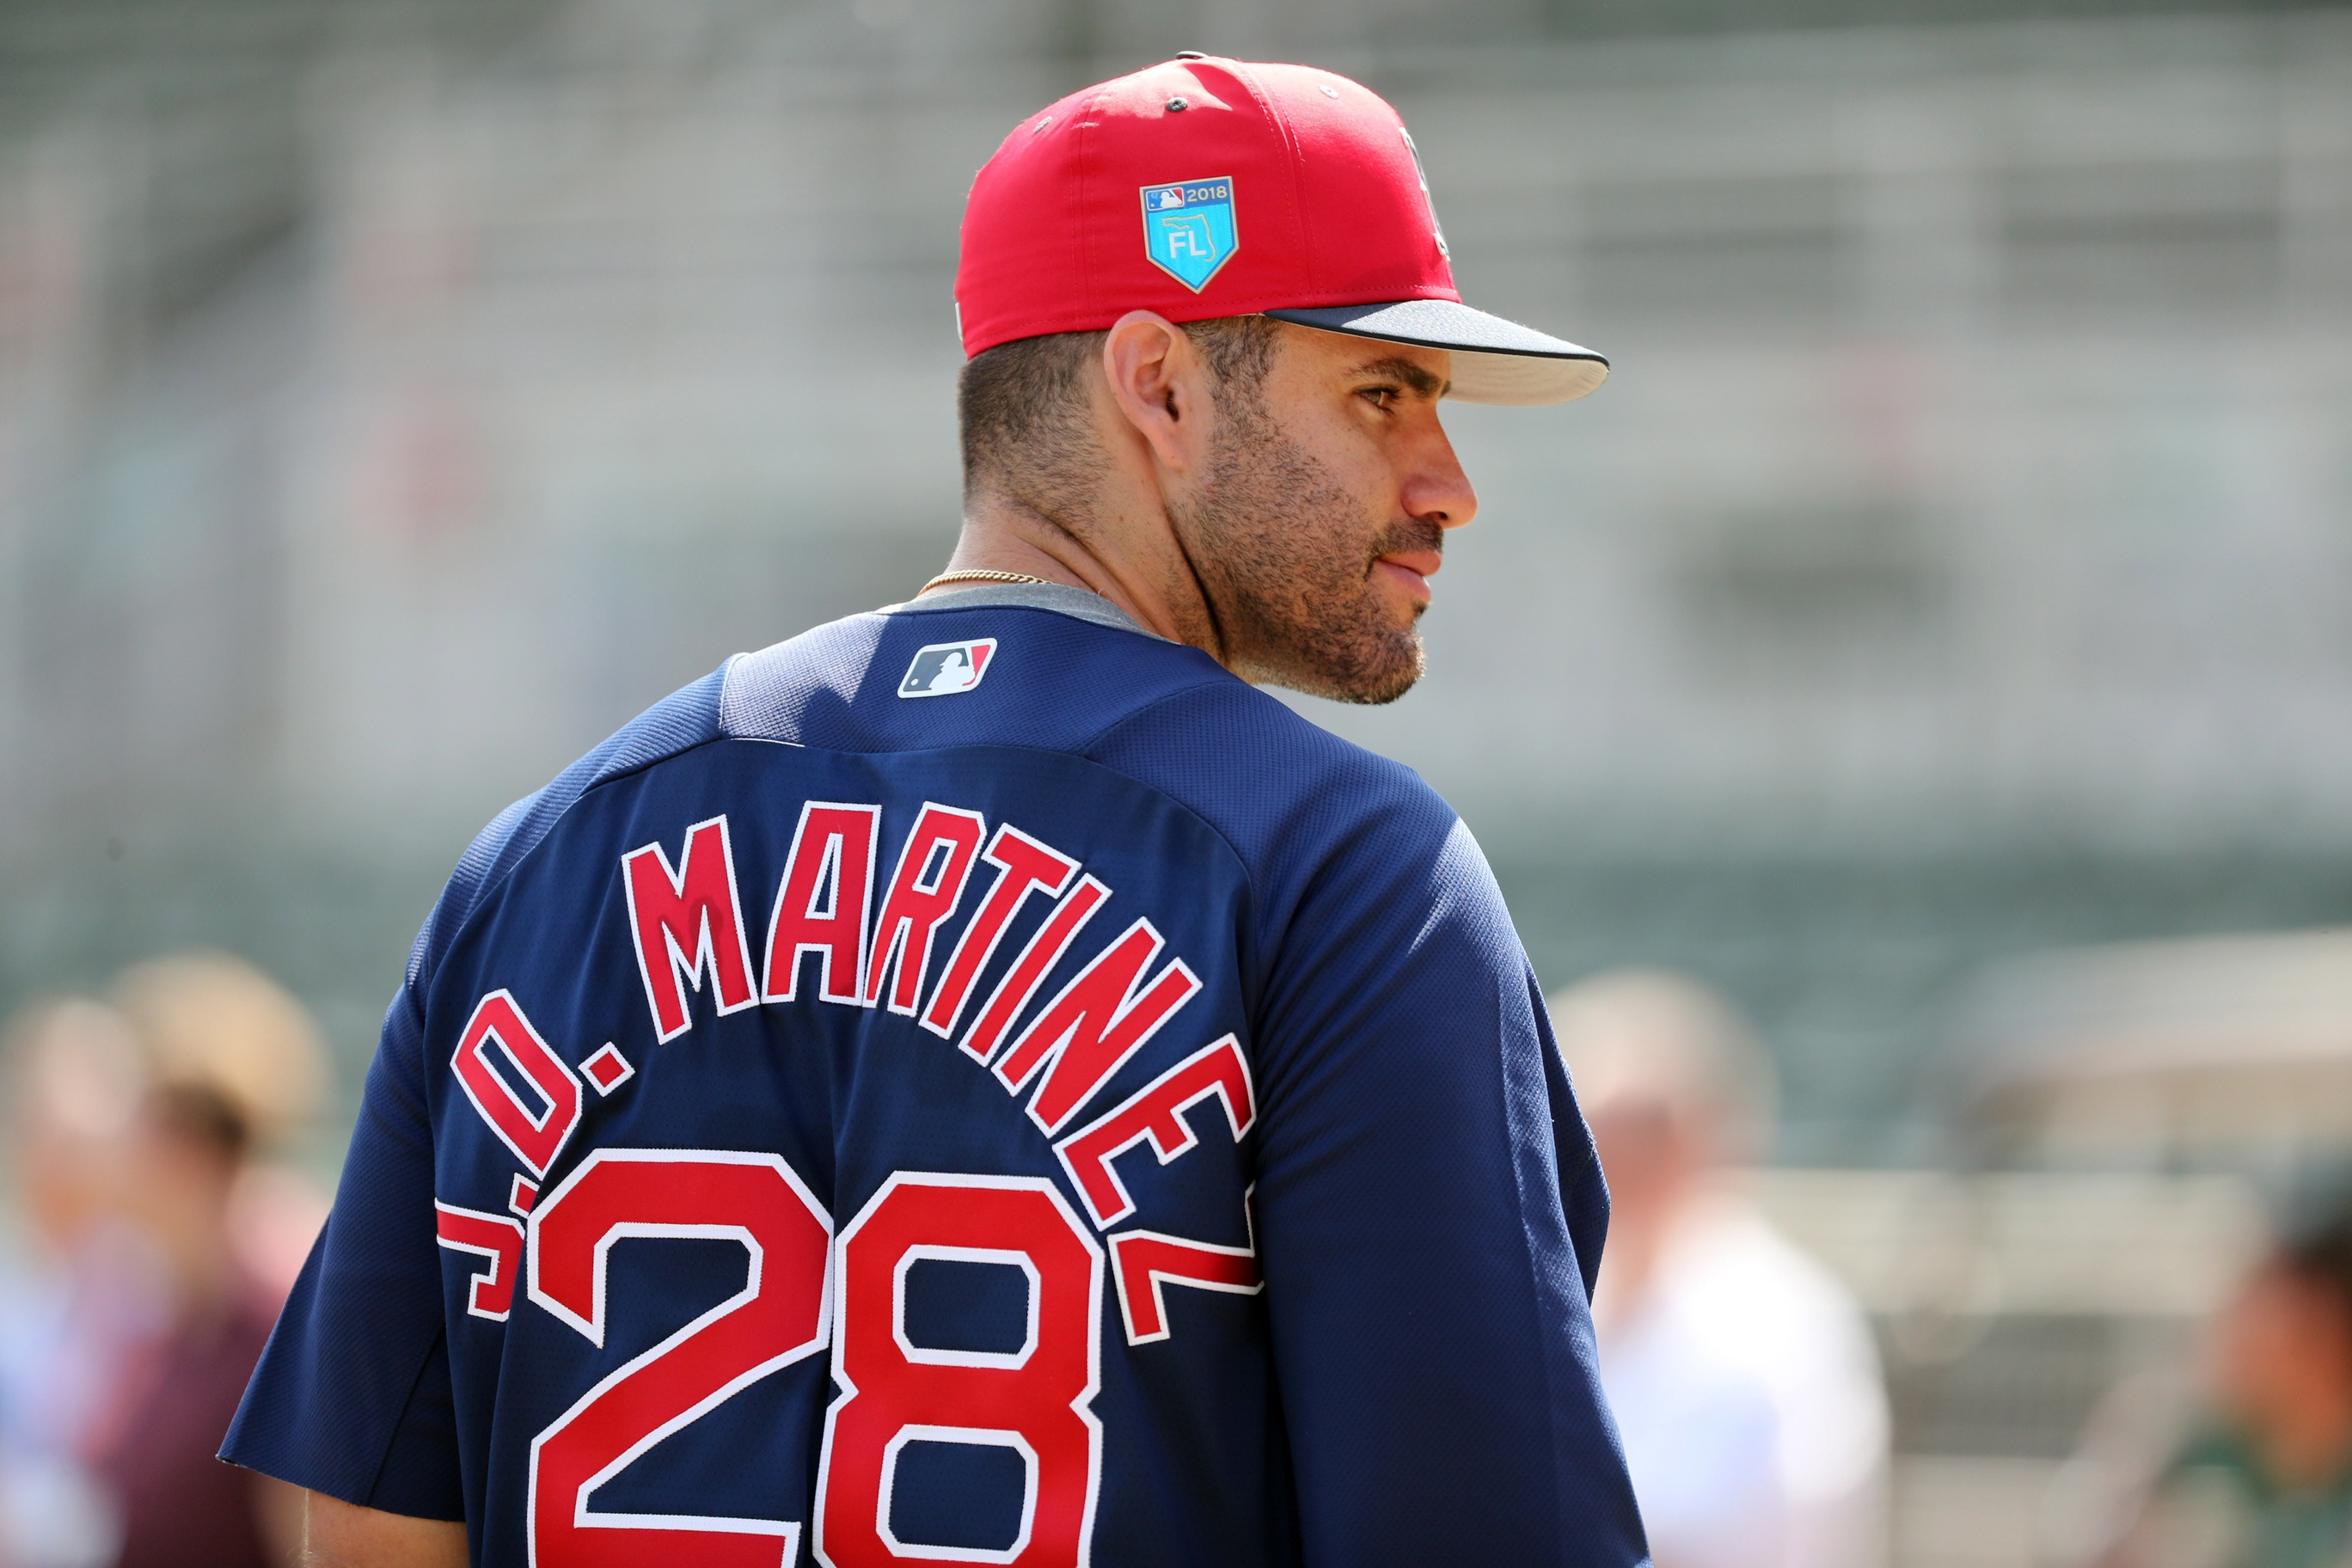 finest selection cb5cb 32b6e J.D. Martinez contract might be most complex in Red Sox ...